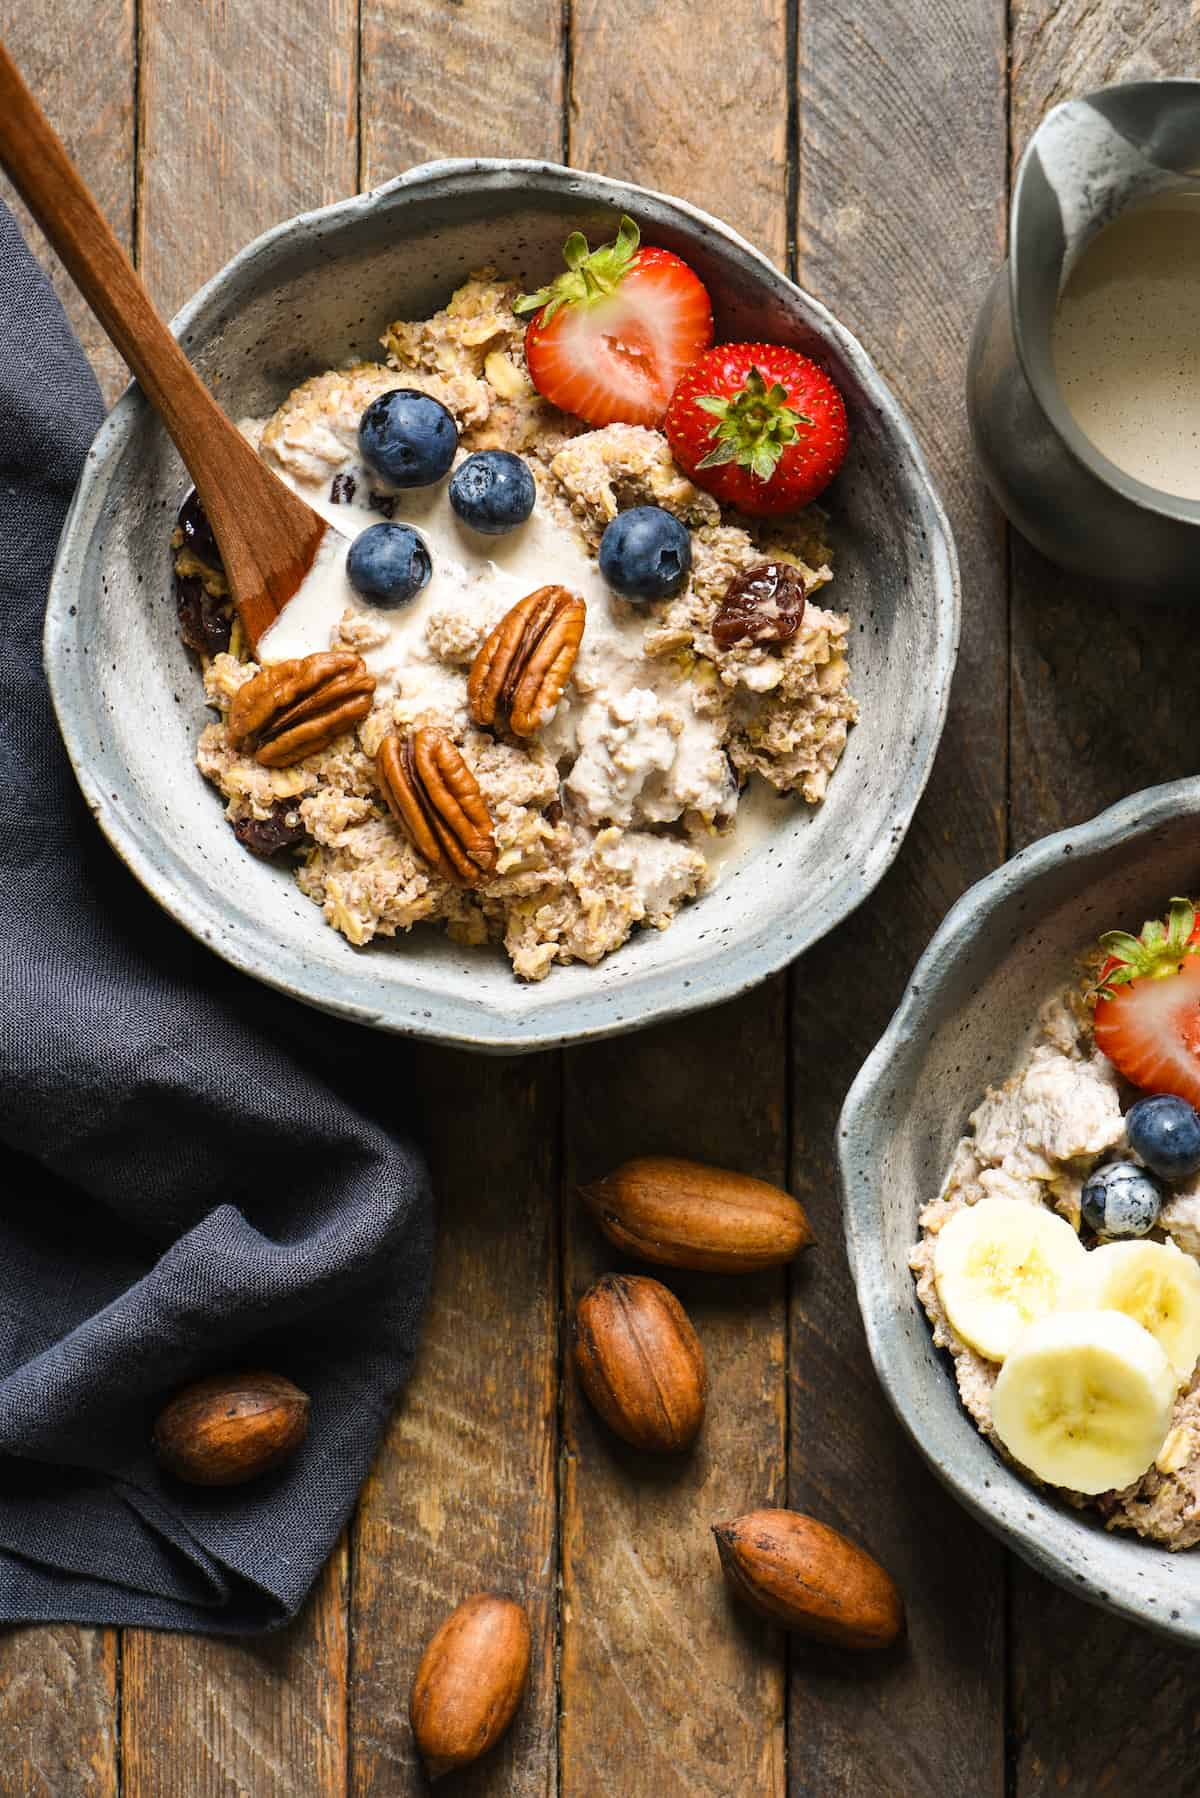 Pecan Milk Breakfast Porridge - Enjoyed warm or cold, this protein-rich, whole grain breakfast made with easy homemade pecan milk will keep you fueled all day!   foxeslovelemons.com